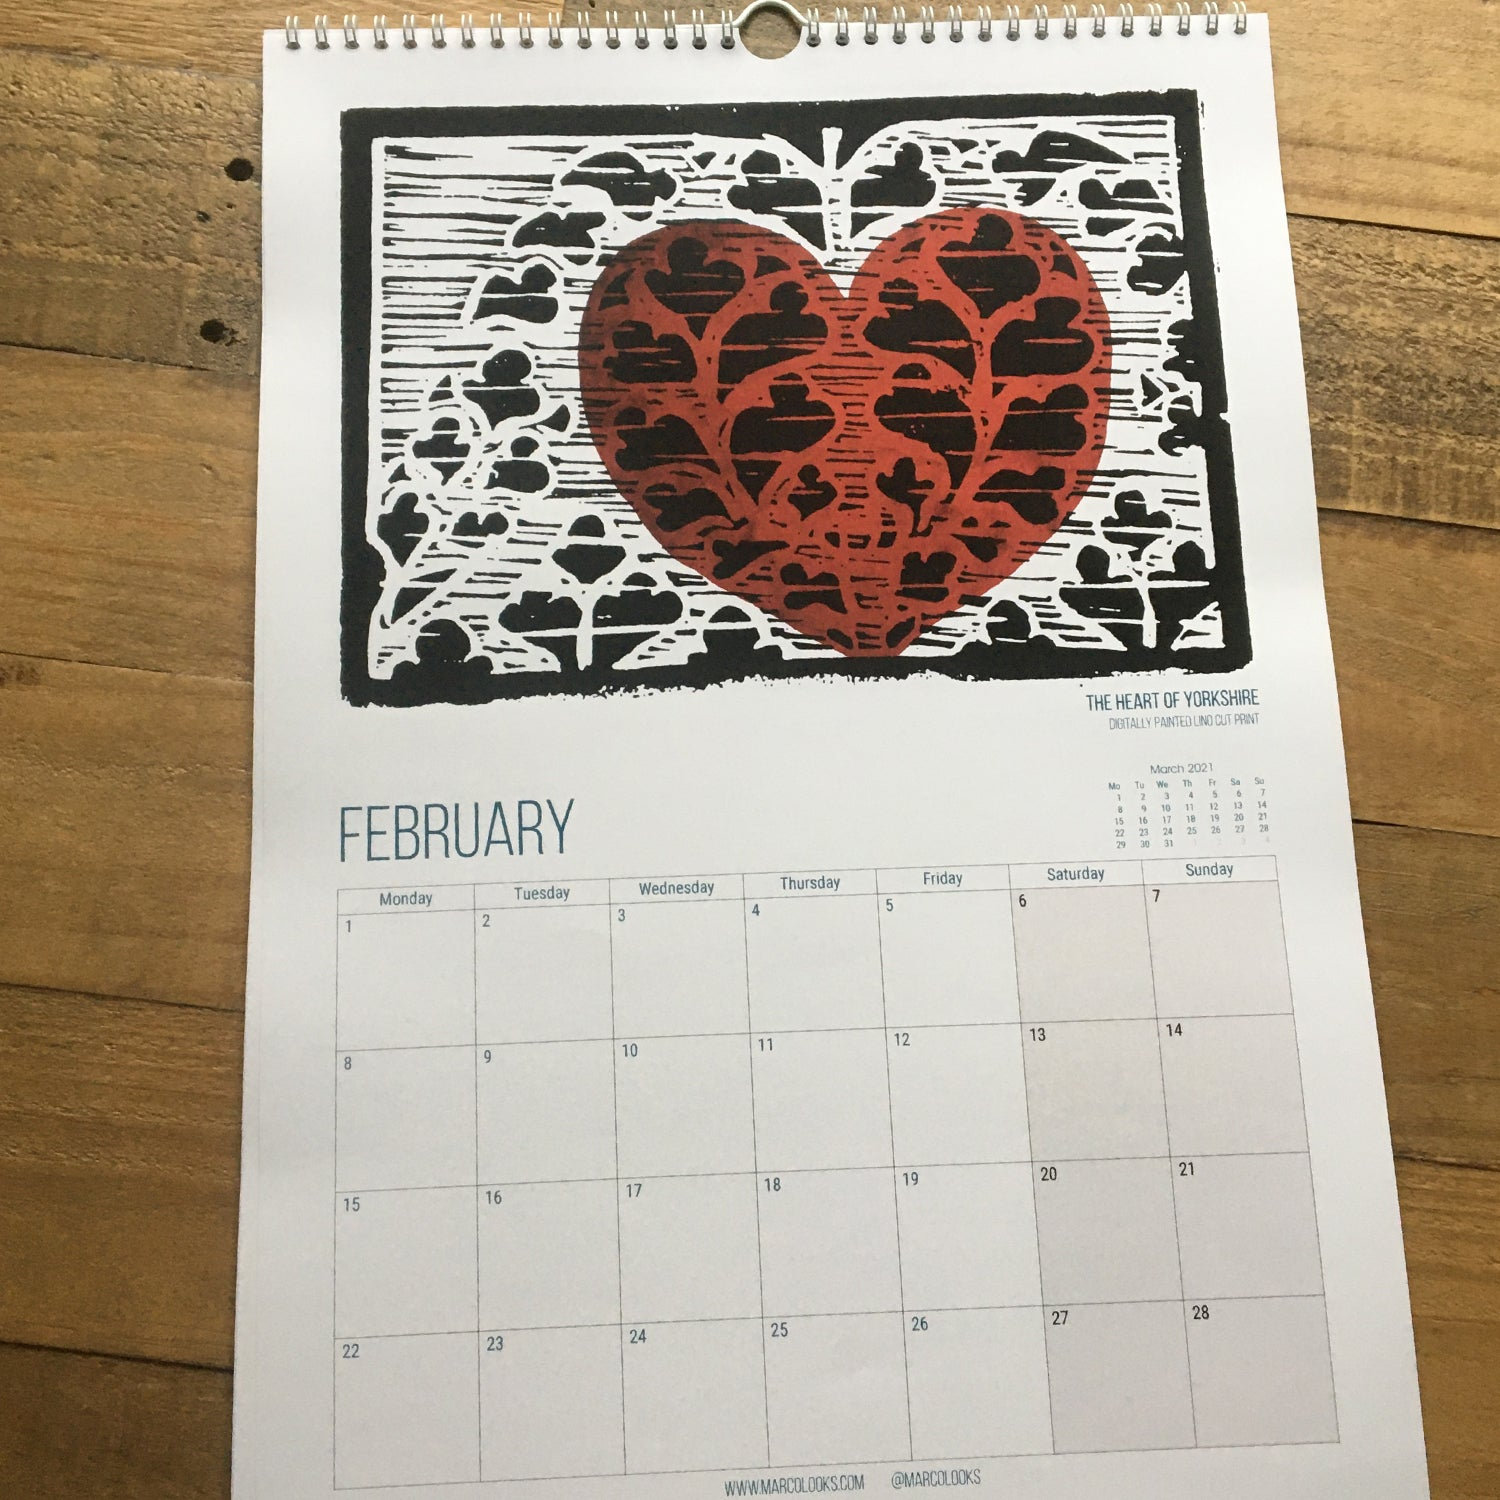 City of York Calendar featuring original artwork from MarcoLooks. February 2021 featuring The Heart of Yorkshire